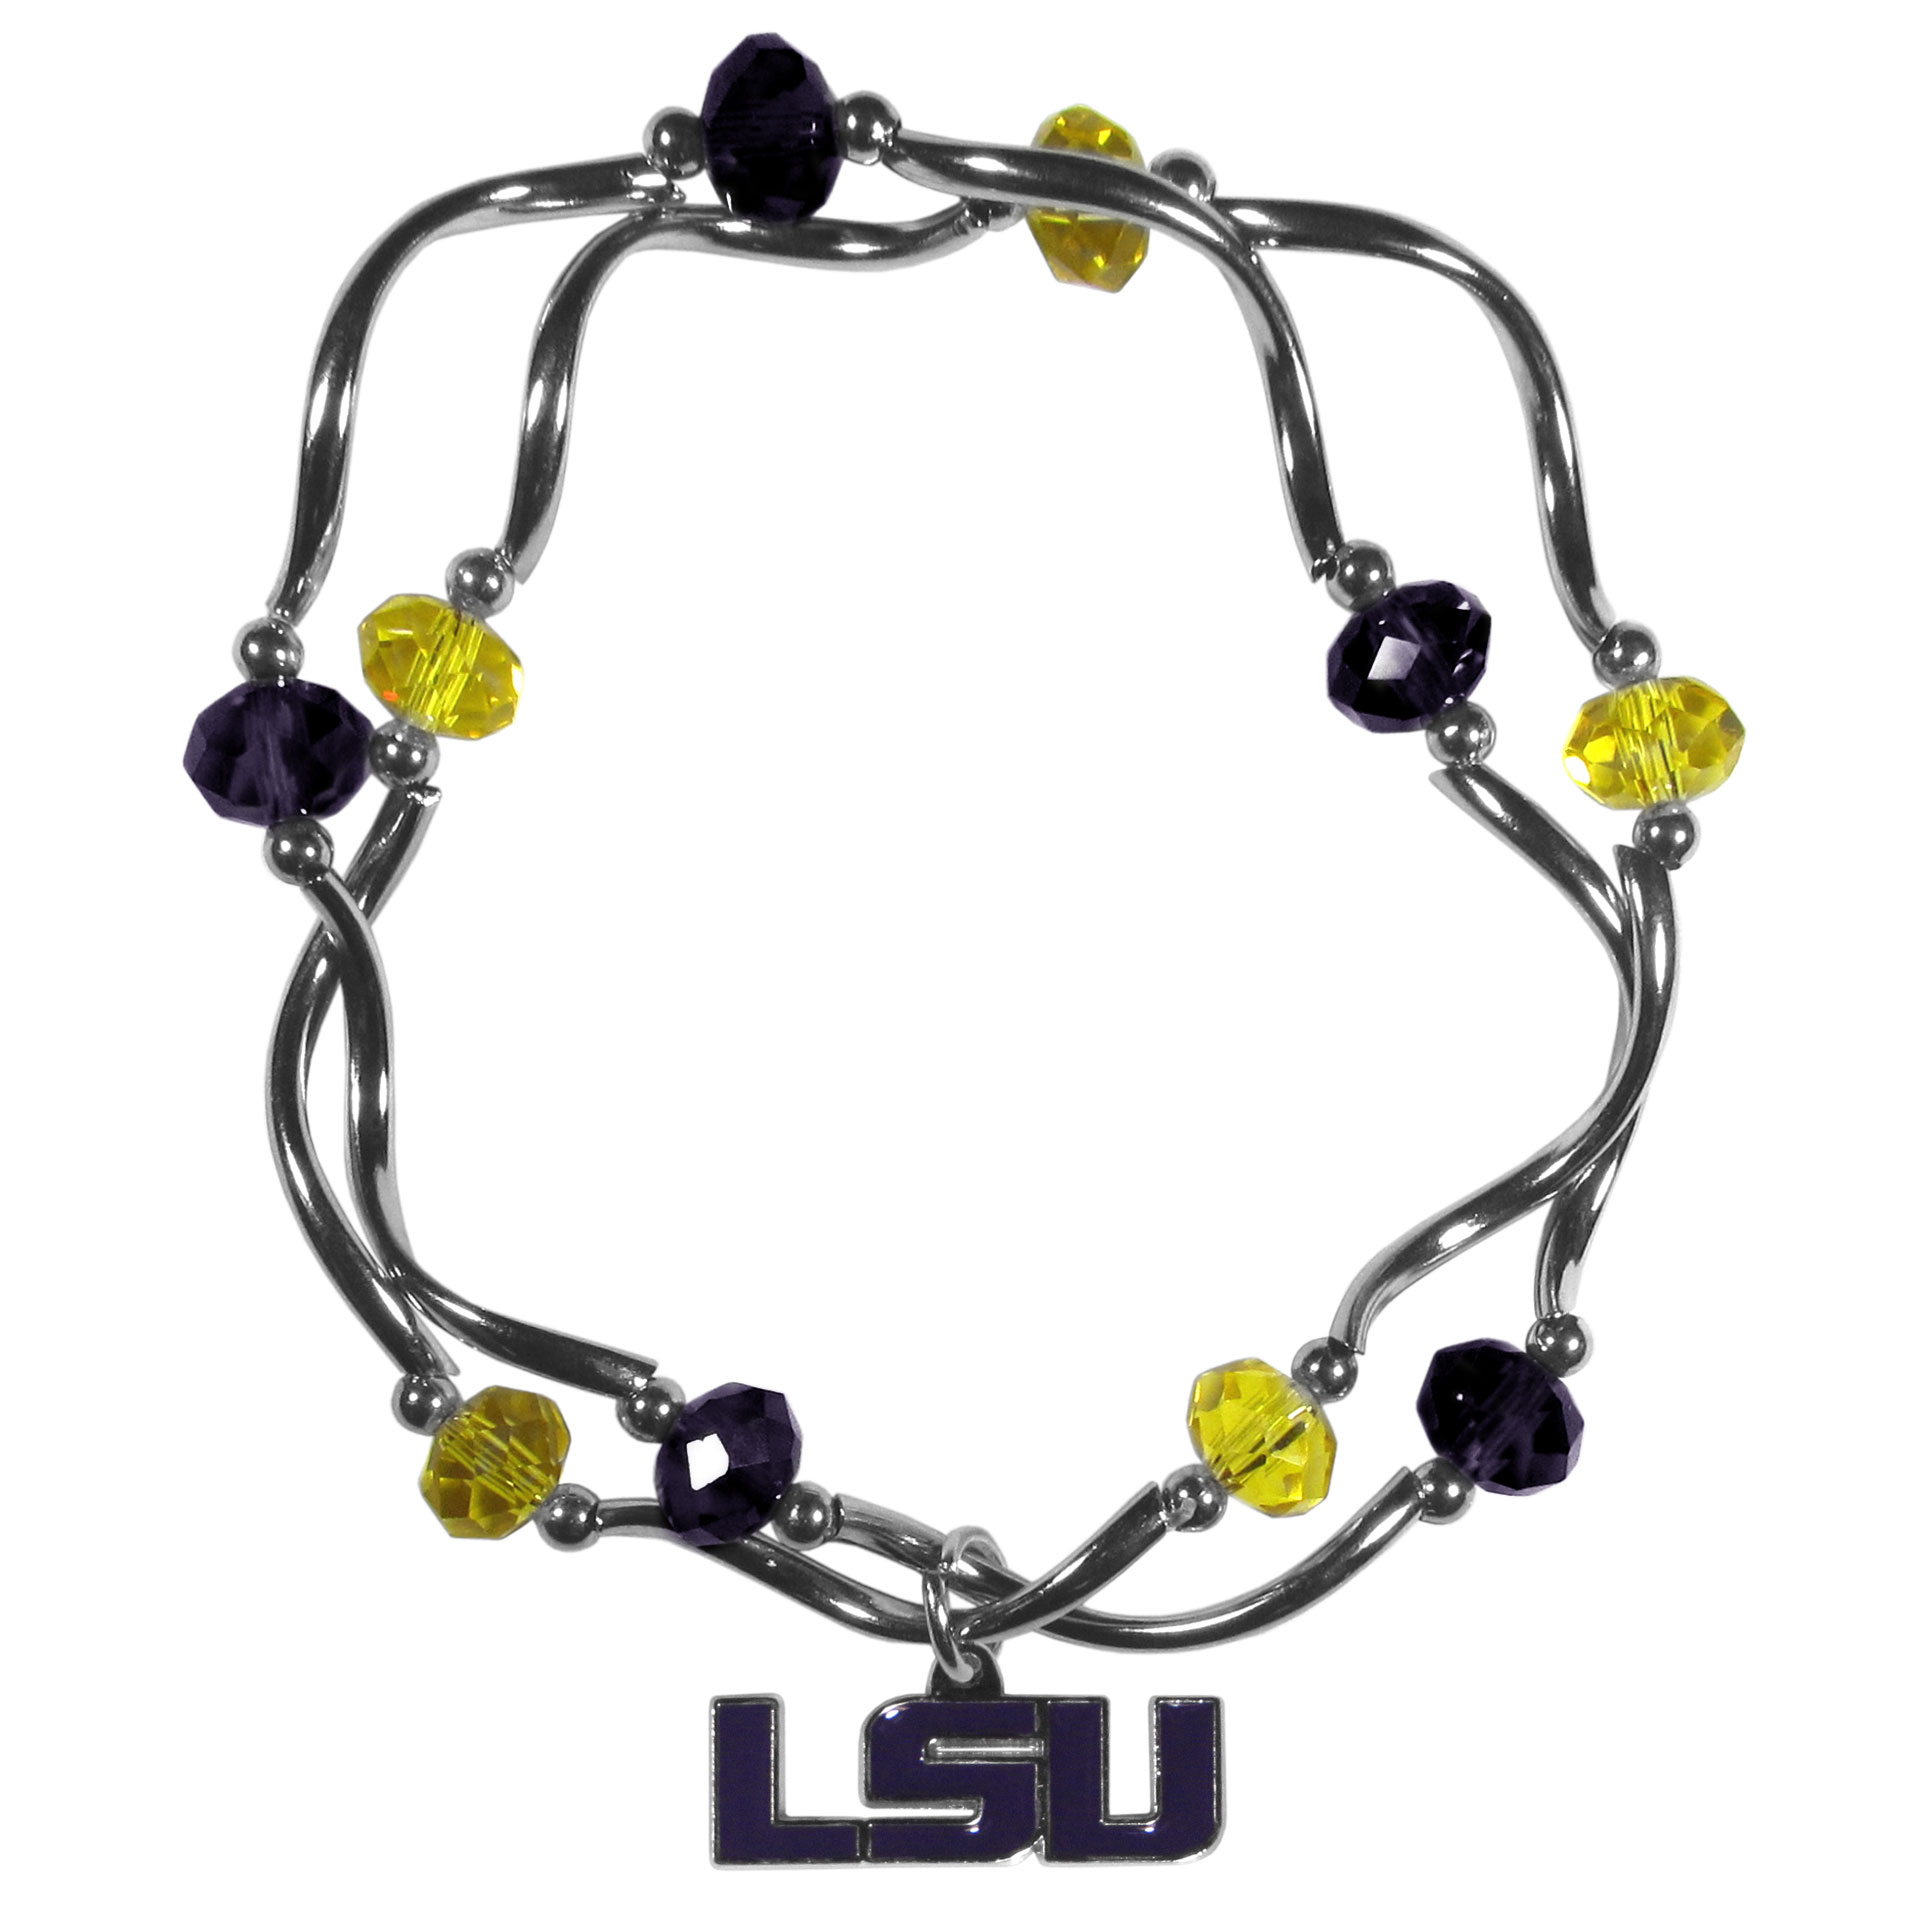 LSU Tigers Crystal Bead Bracelet - This delicate bead bracelet has eye-catching team colored beads that are strung on 2 stretch cords that provide a comfortable and easy fit. The crystals are separated by beautiful helix beads in high polish chrome for a truly designer inspired look. The 2 strands of beads intertwine for a fun and stylish bracelet. This chic accessory is finished off with a LSU Tigers team charm that has expertly carved detail and an enameled color finish. A contemporary look to thrill any female sports fan. Whether this a gift for yourself or someone special you cannot miss with this trend-setting fashion bracelet.